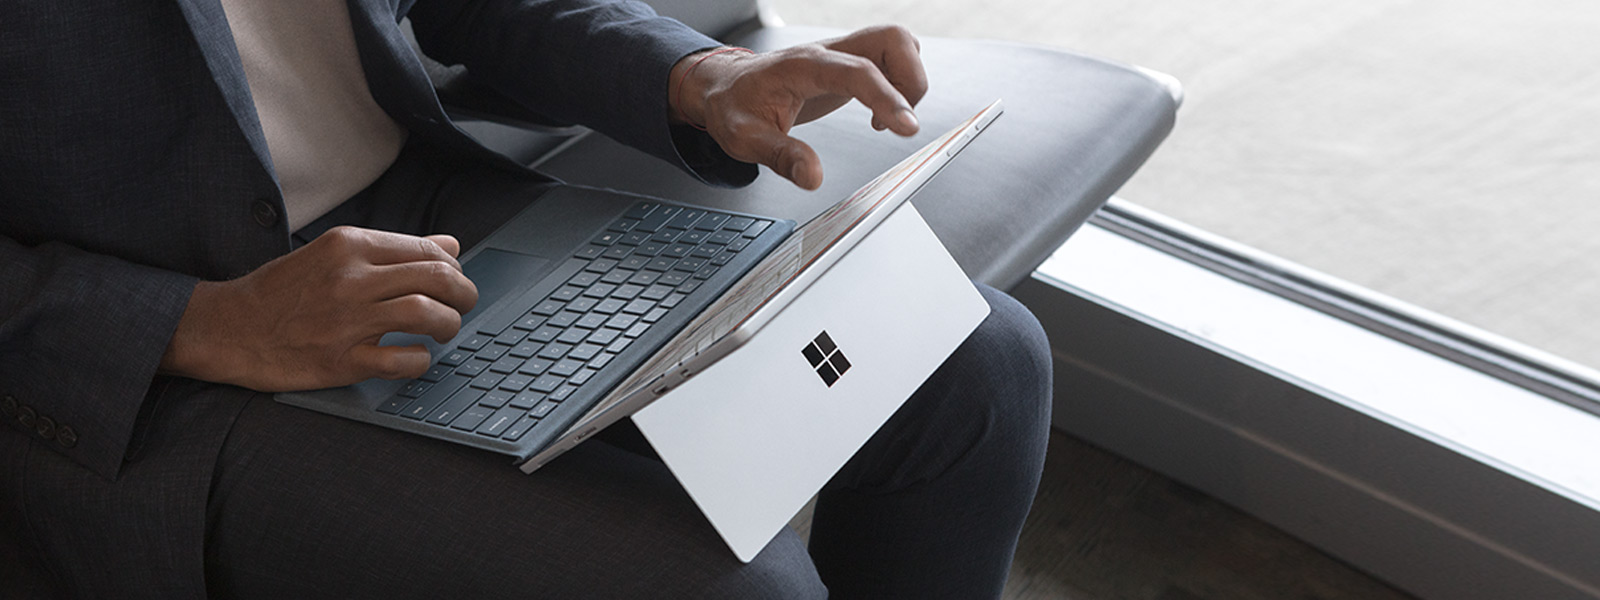 A man works with a Surface Pro 6 in Laptop Mode